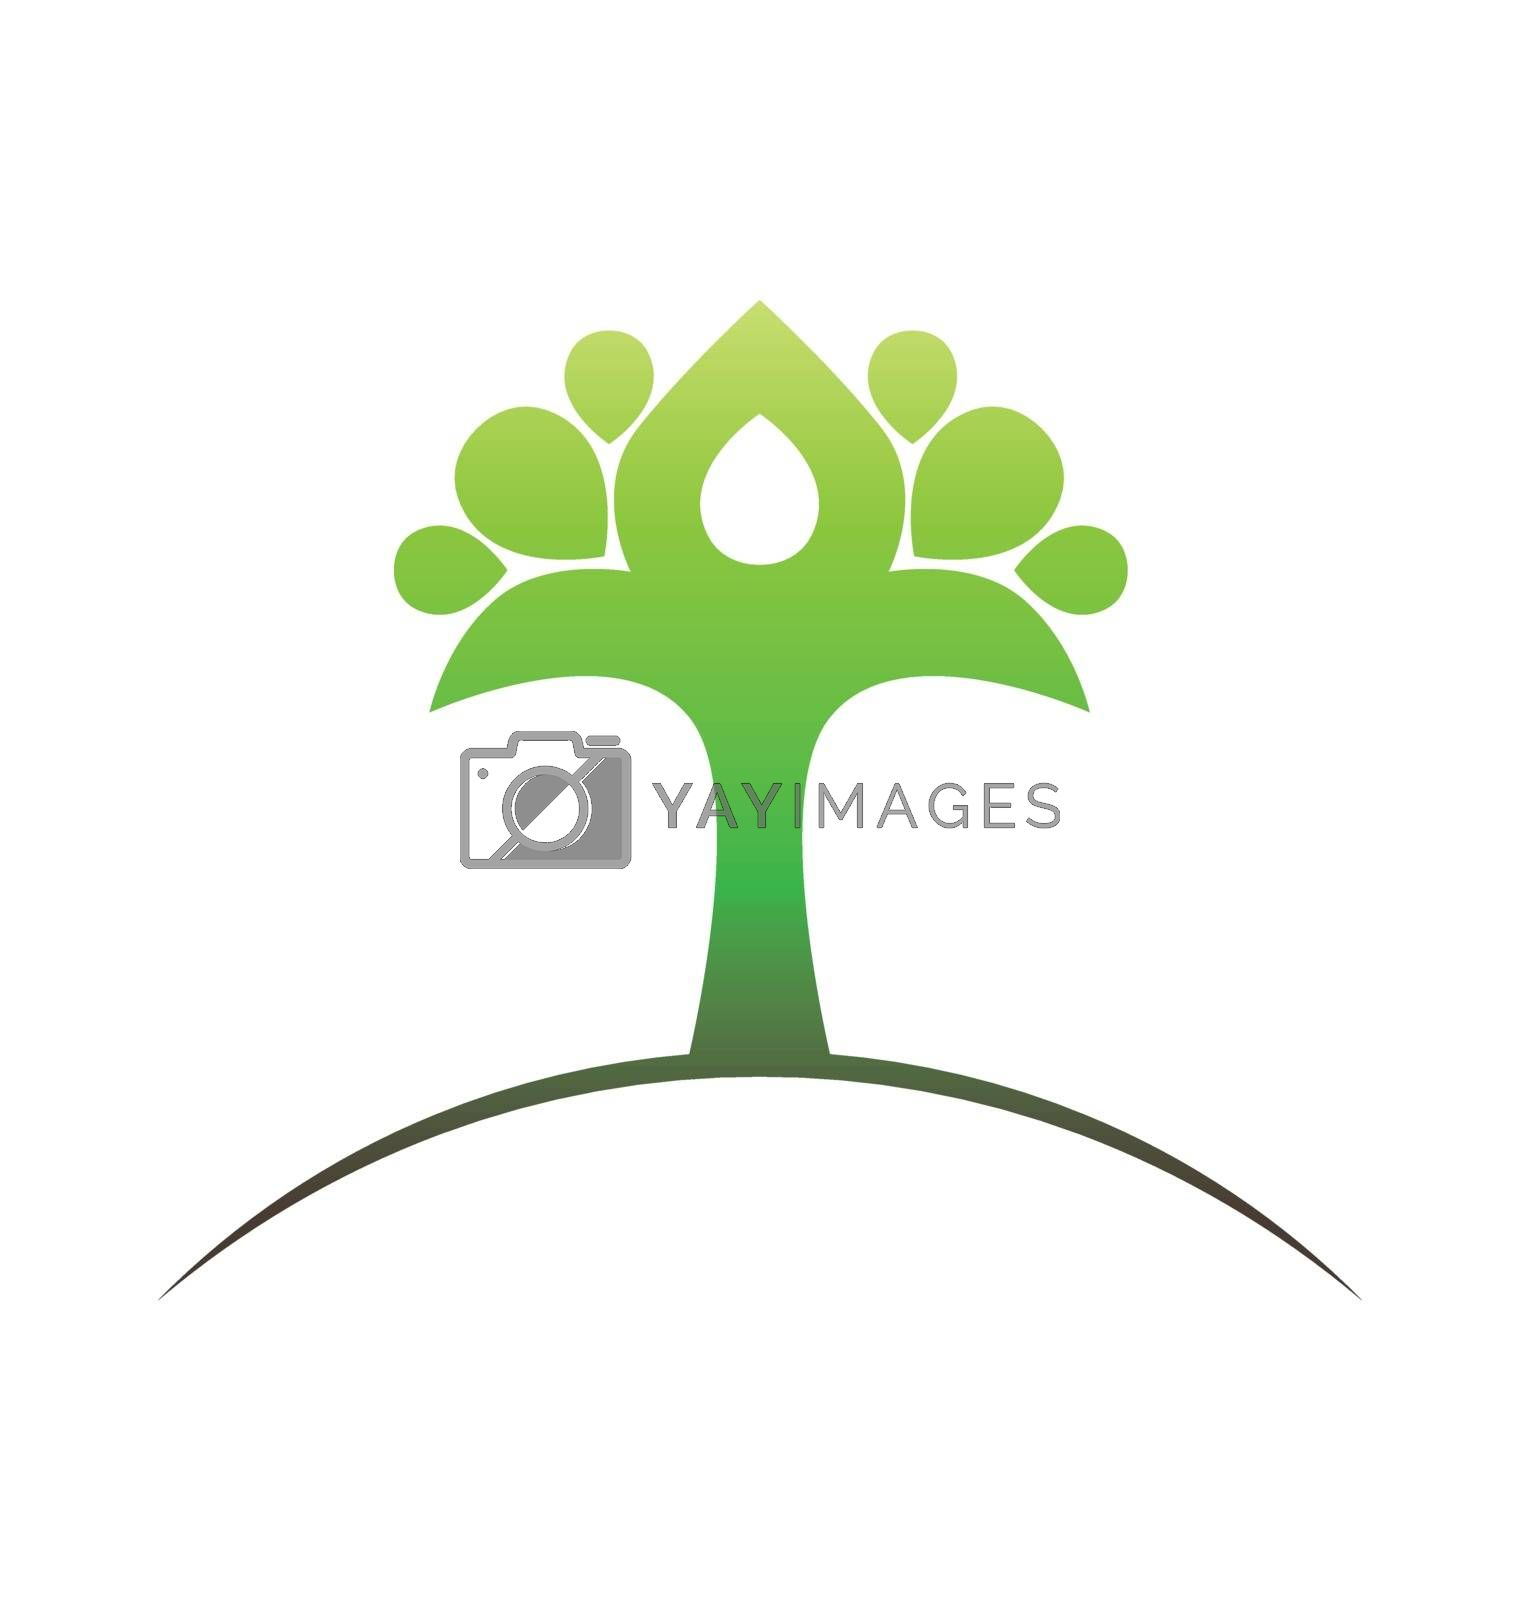 Abstract and stylized green tree vector emblem design